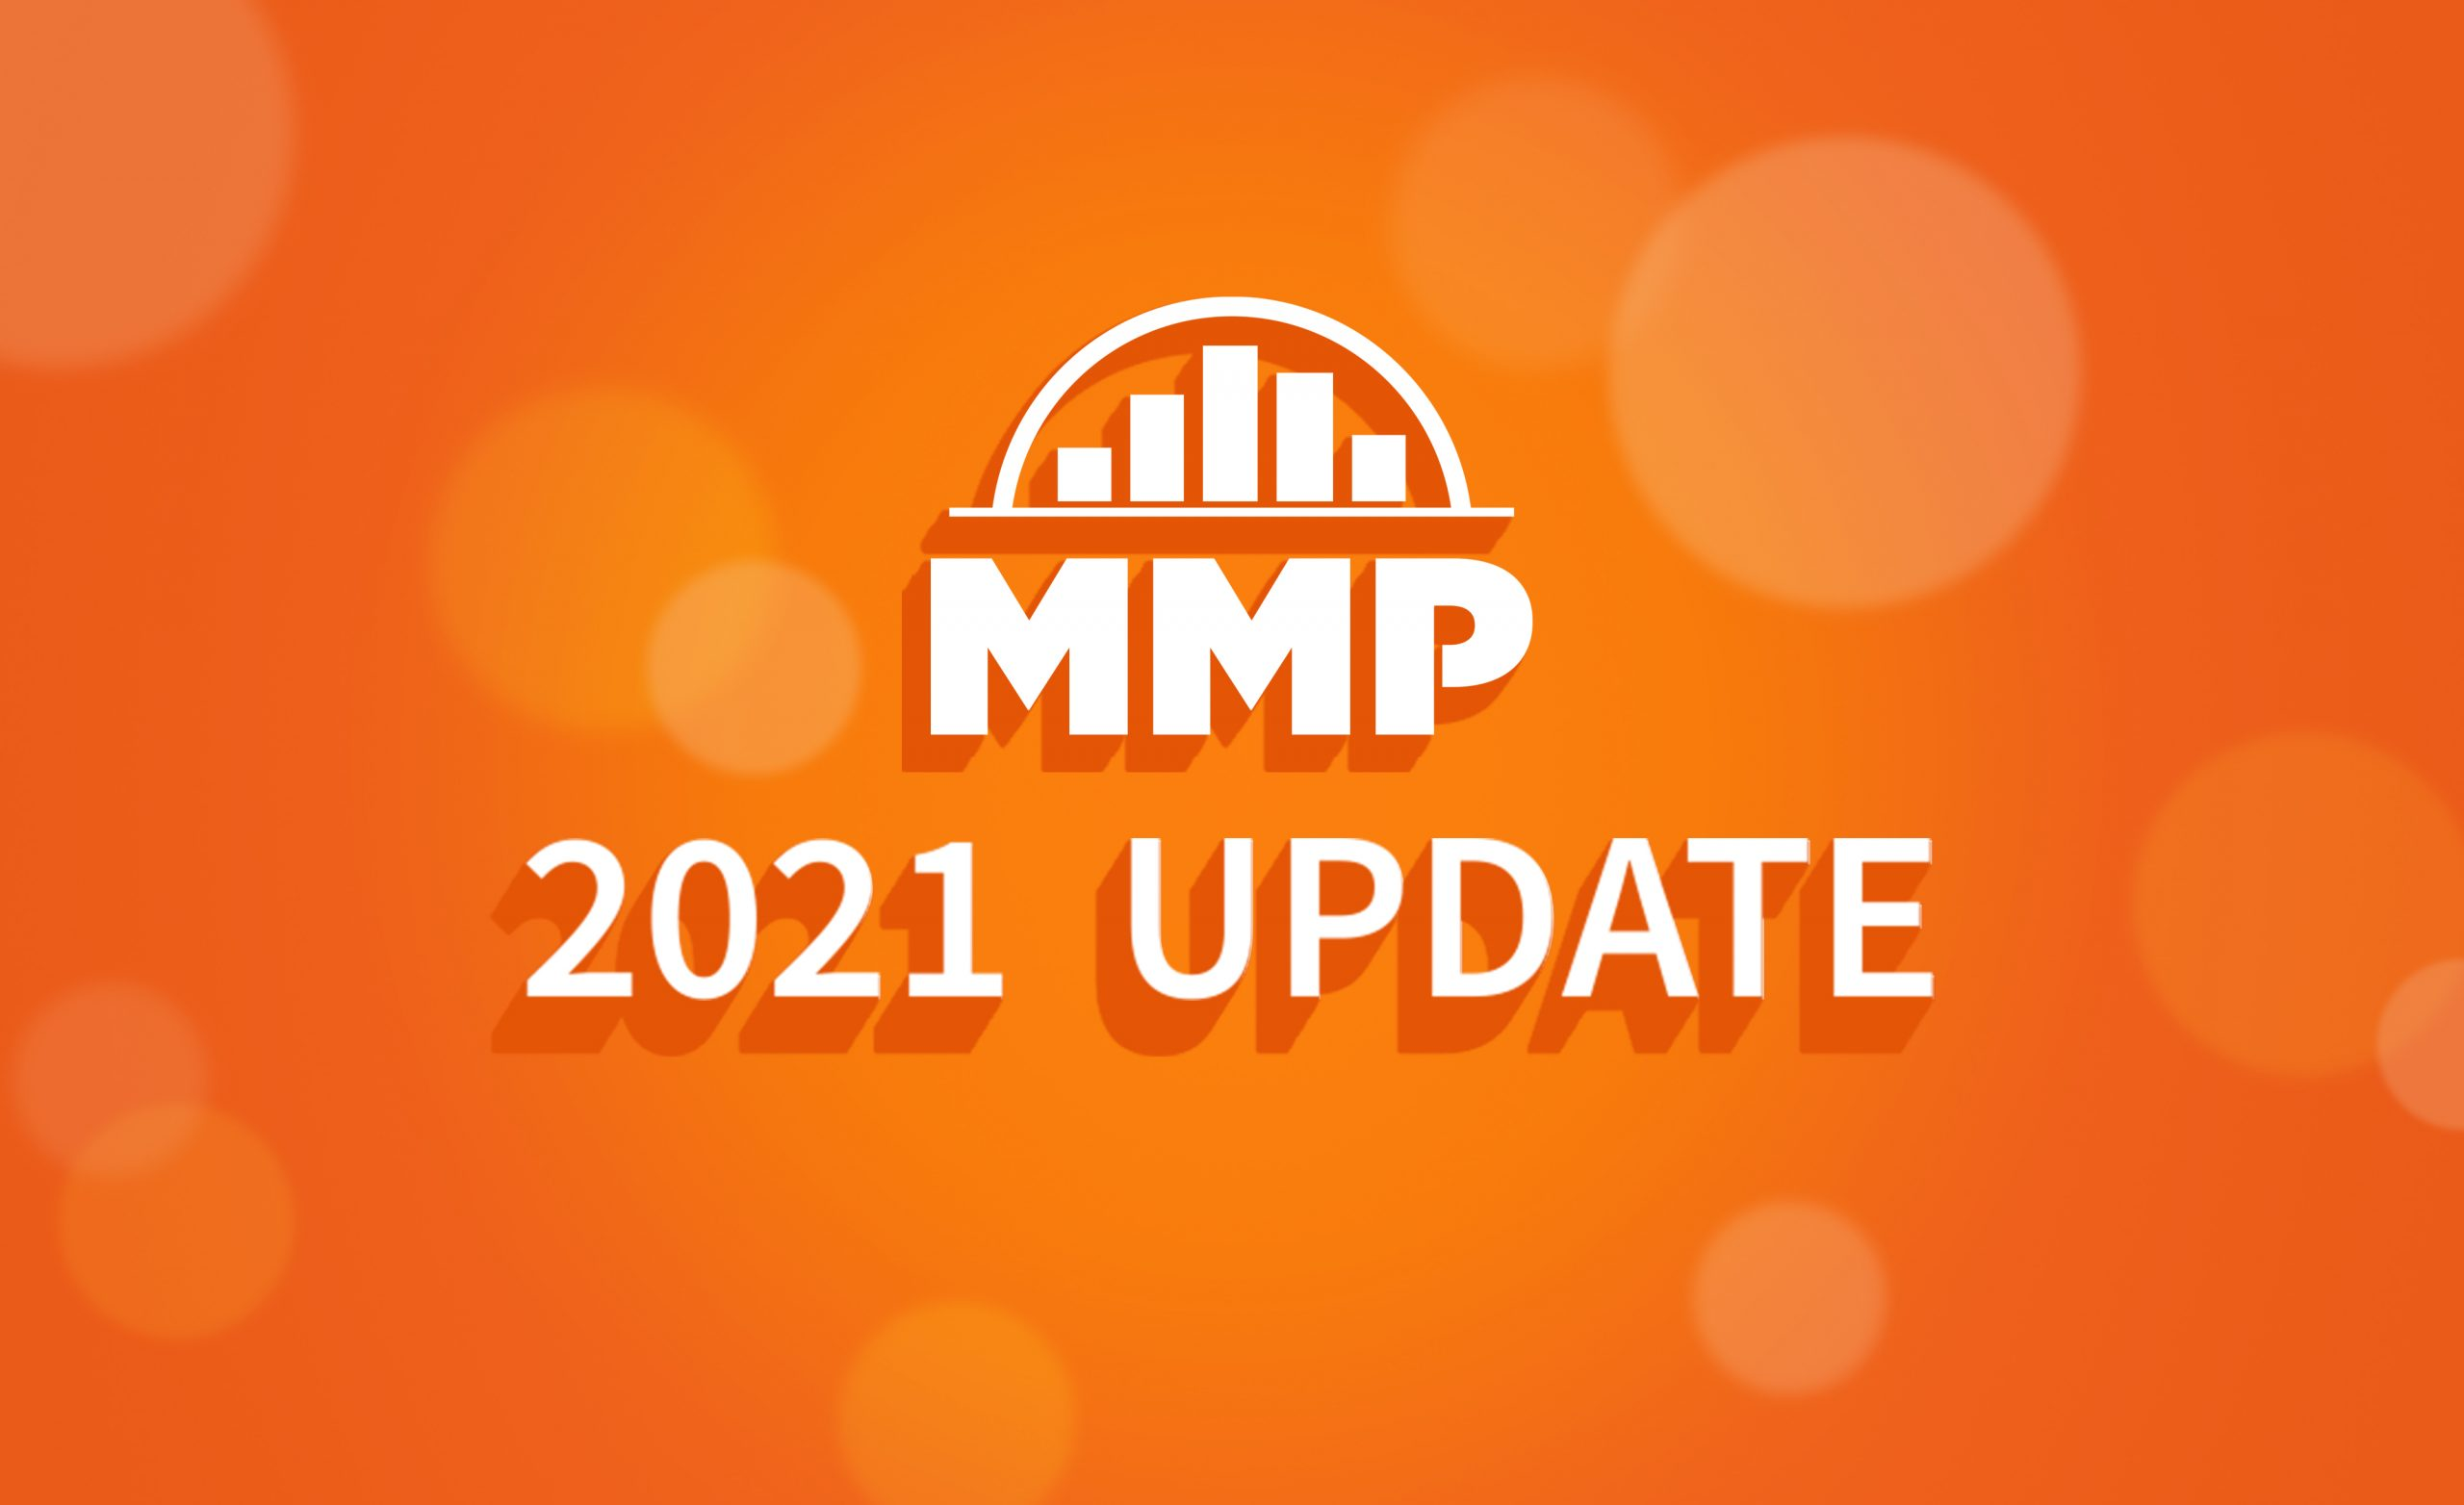 MMP eligibility expands to include counties and districts